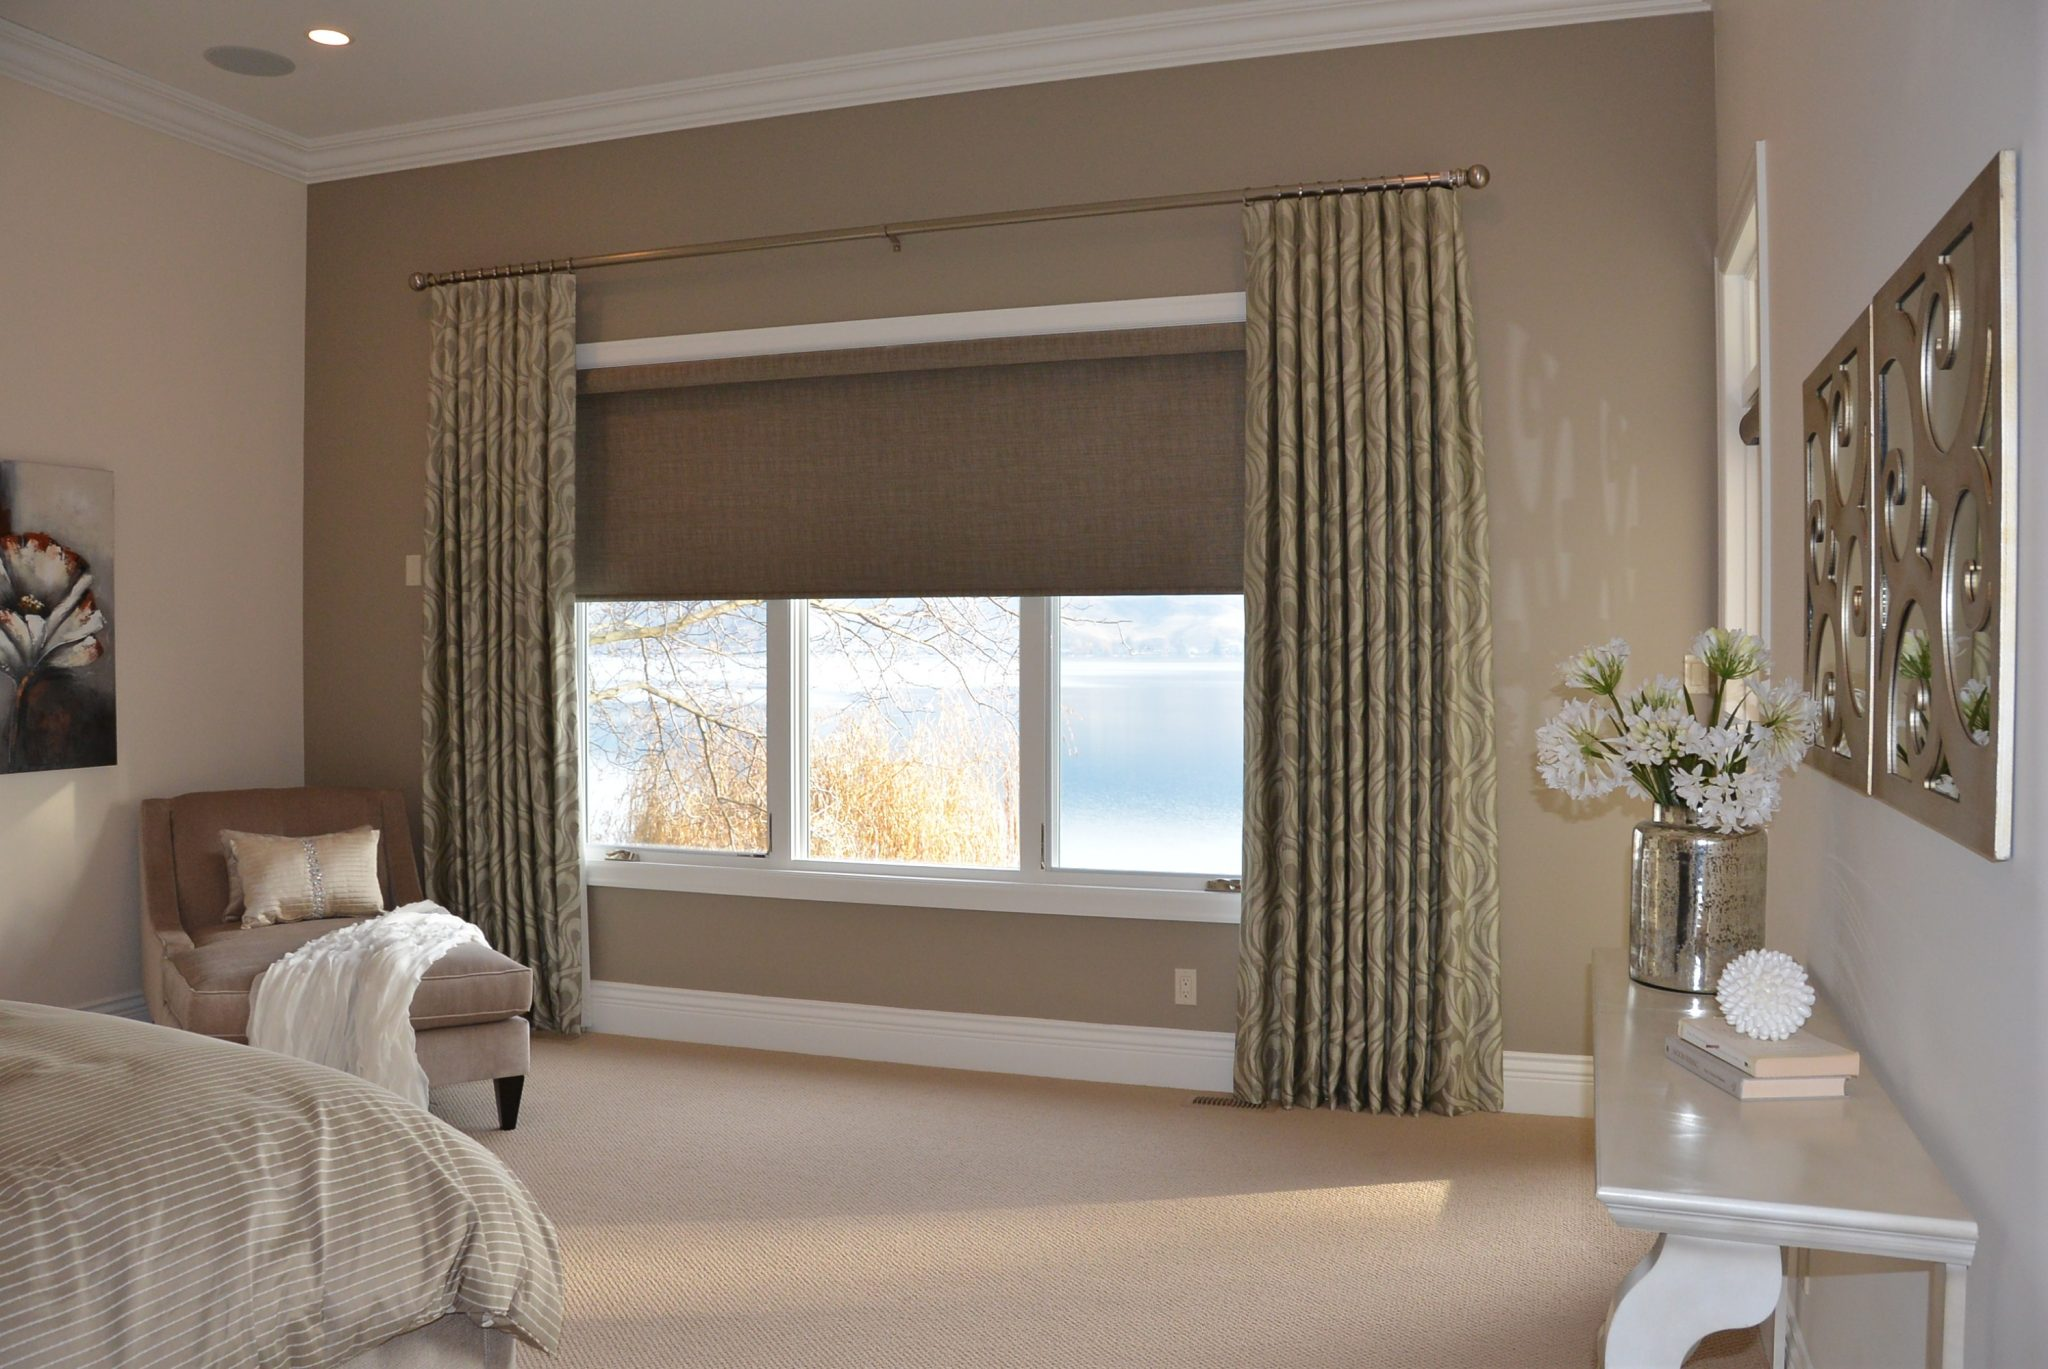 Home gt hunter douglas gt shades gt hunter douglas designer roller shades - Blackout Roller